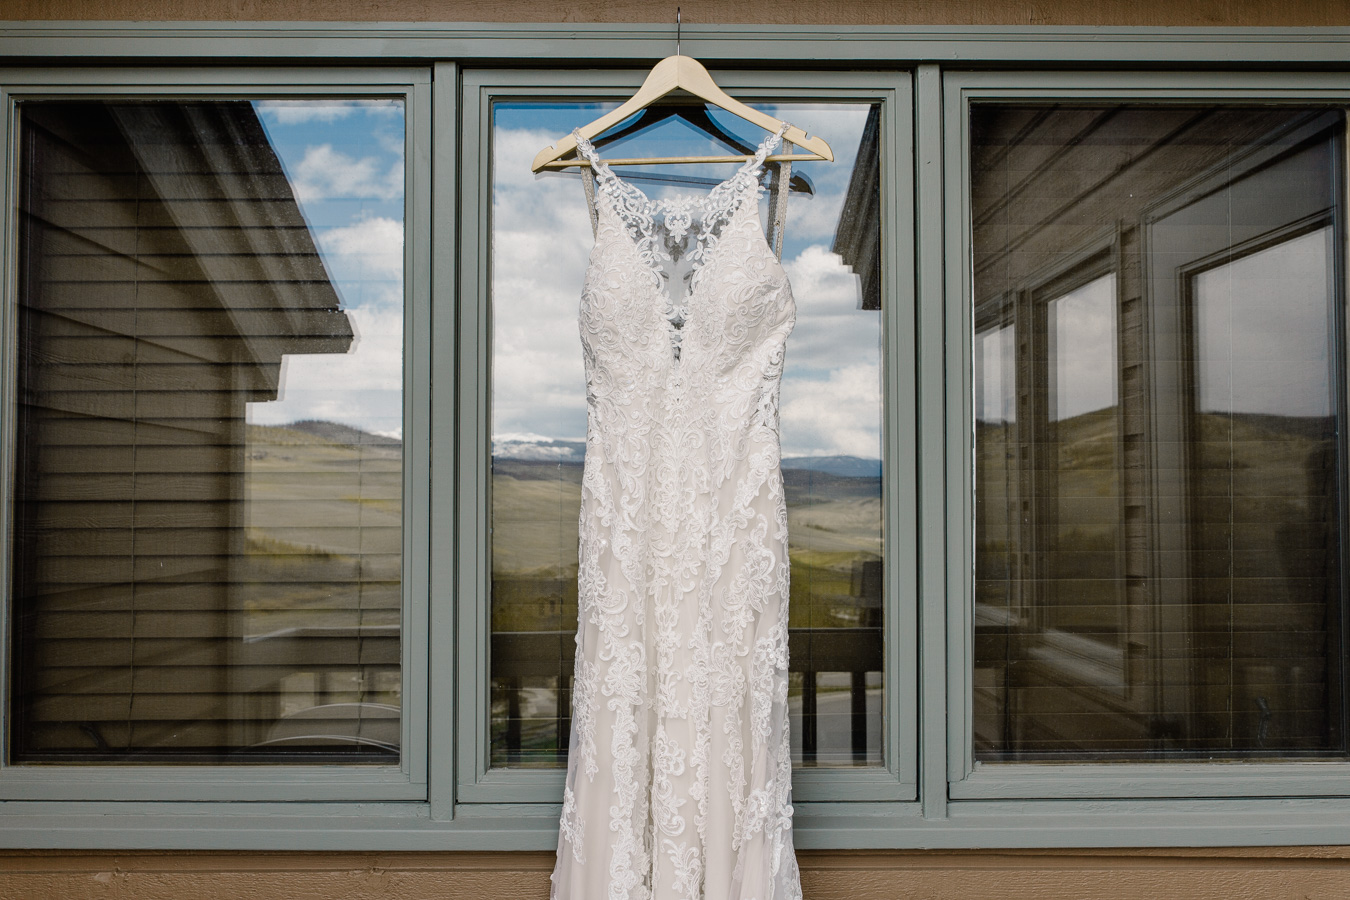 Snow Mountain Ranch Winter Park, Colorado Mountain Wedding {Kayla & Nathan | Colorado Mountain Wedding By Brittany}